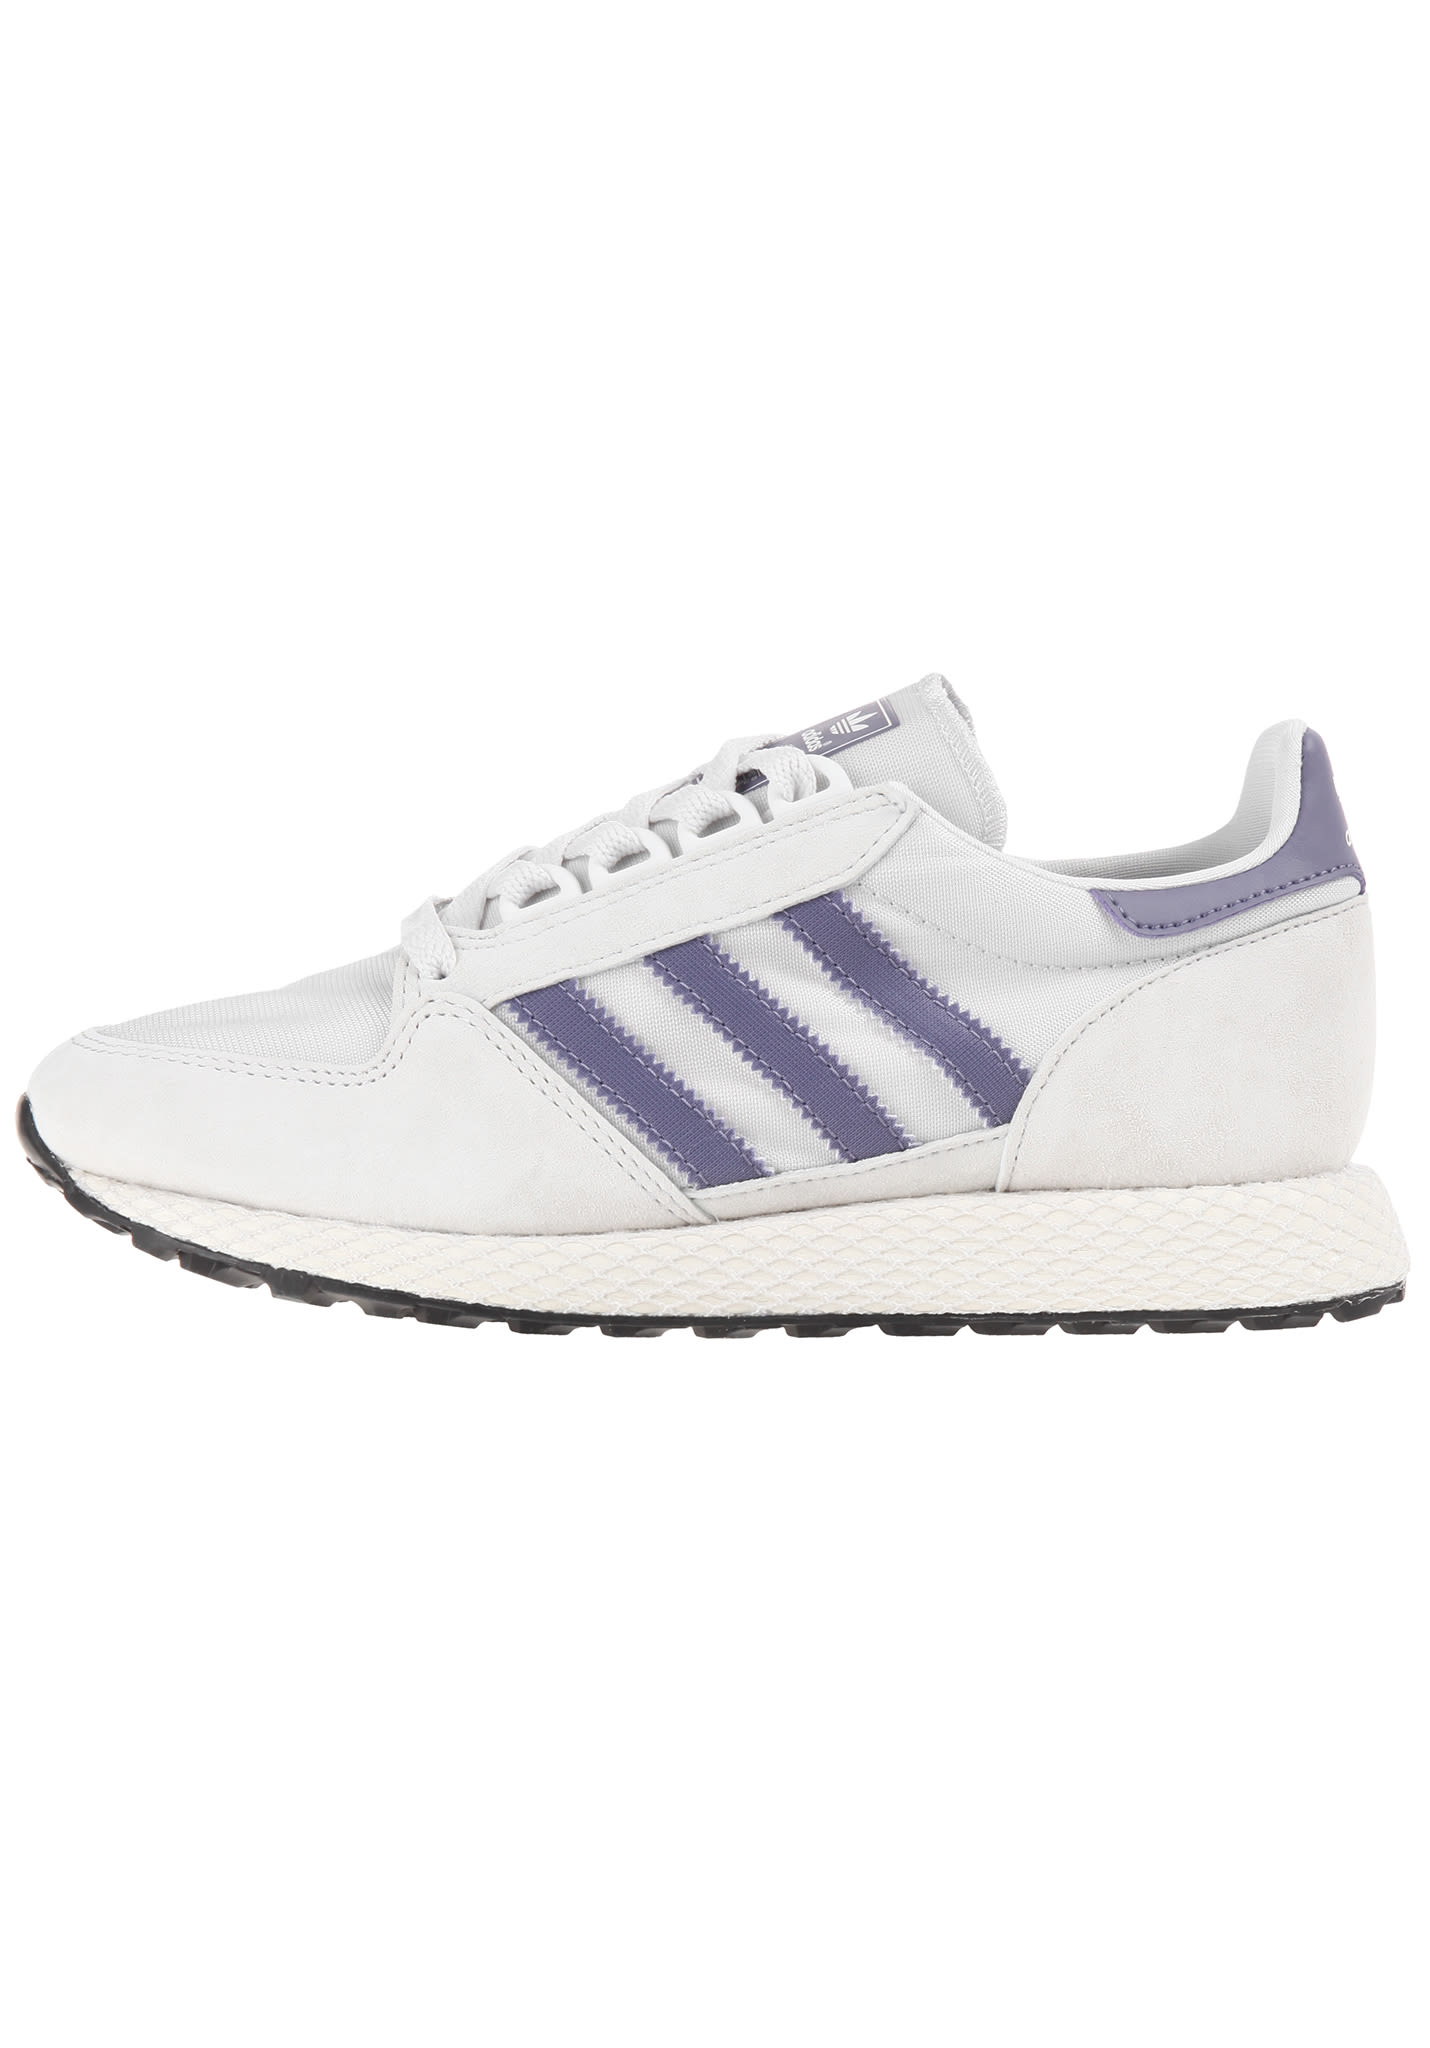 ADIDAS ORIGINALS Forest Grove - Baskets pour Femme - Beige